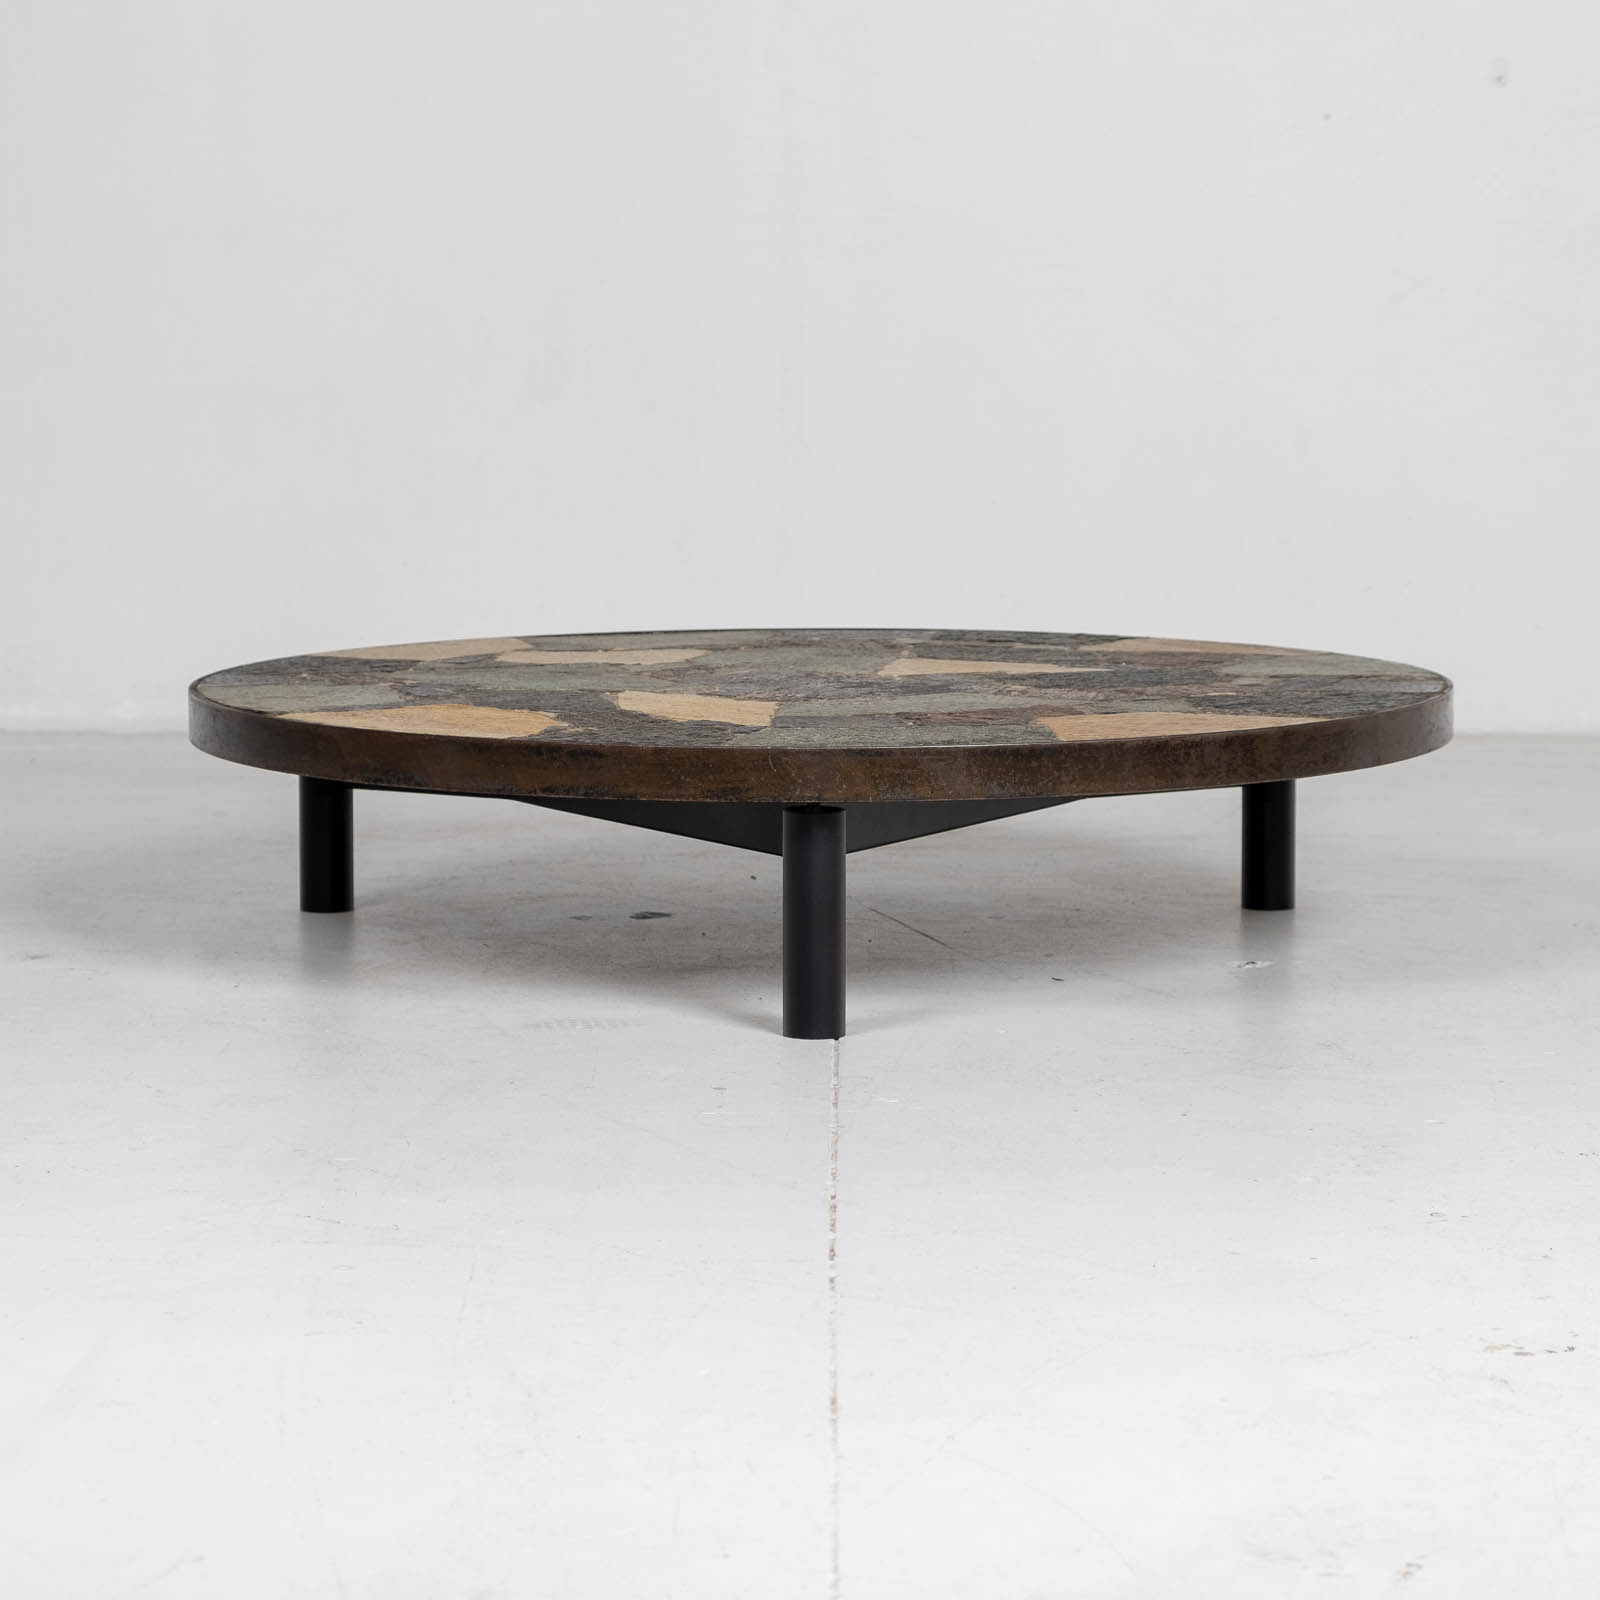 Circular Coffee Table In The Style Of Paul Kingma With Mosaic Slate Top And Metal Edge, 1970s, The Netherlands 00001